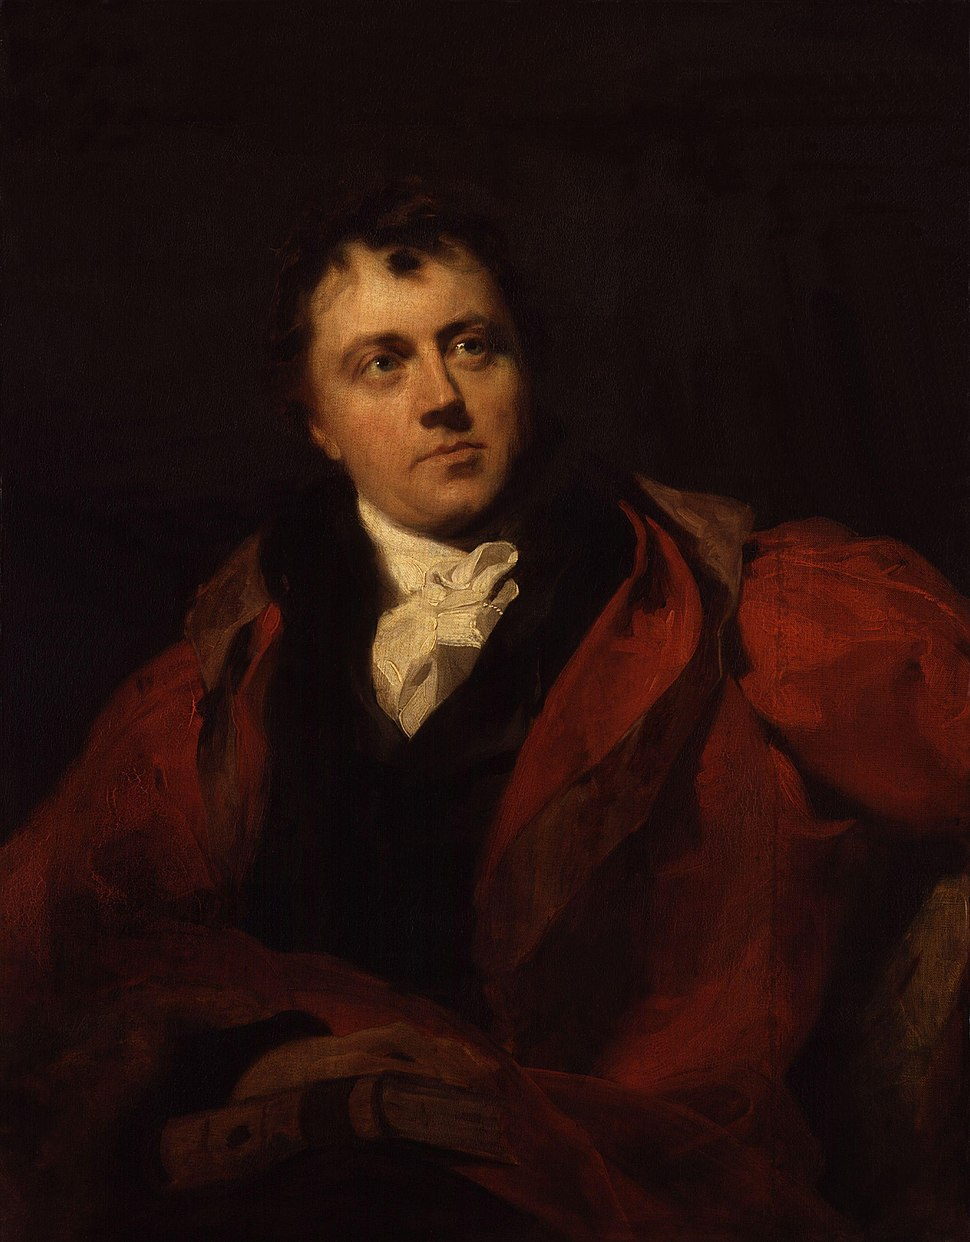 Sir James Mackintosh by Sir Thomas Lawrence